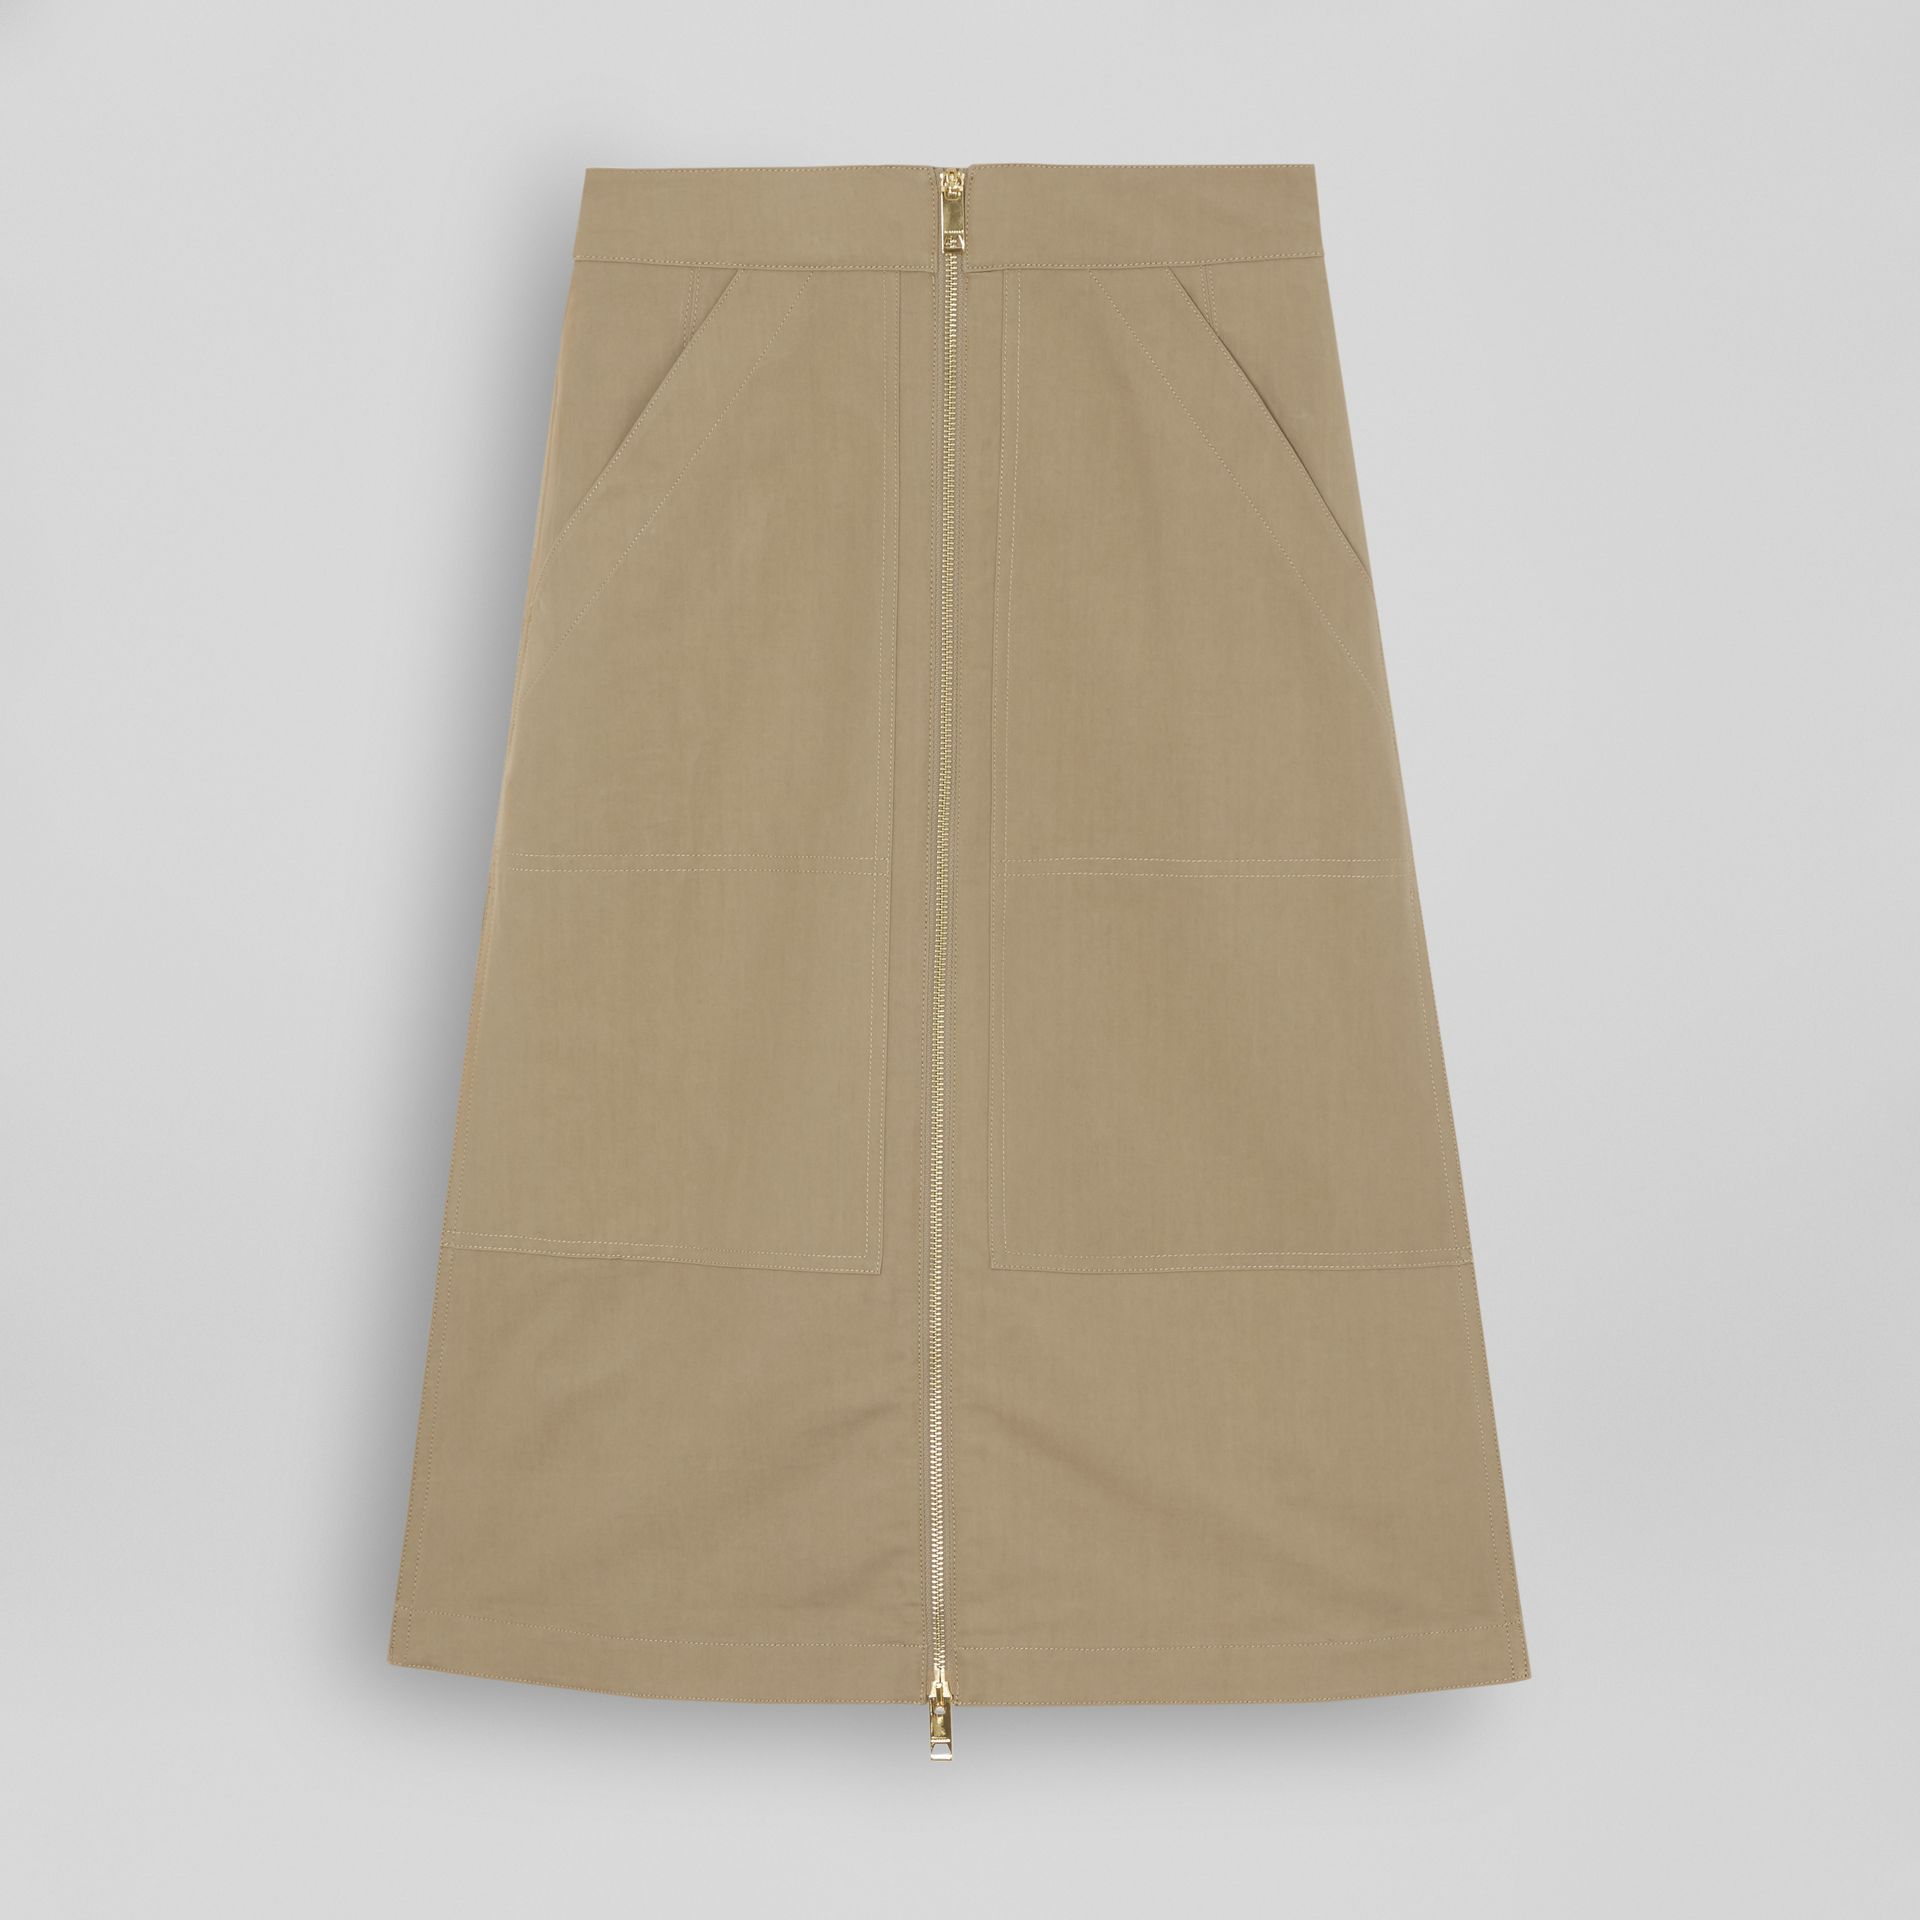 Cotton Silk High-waisted Skirt in Beige - Women | Burberry Canada - gallery image 2